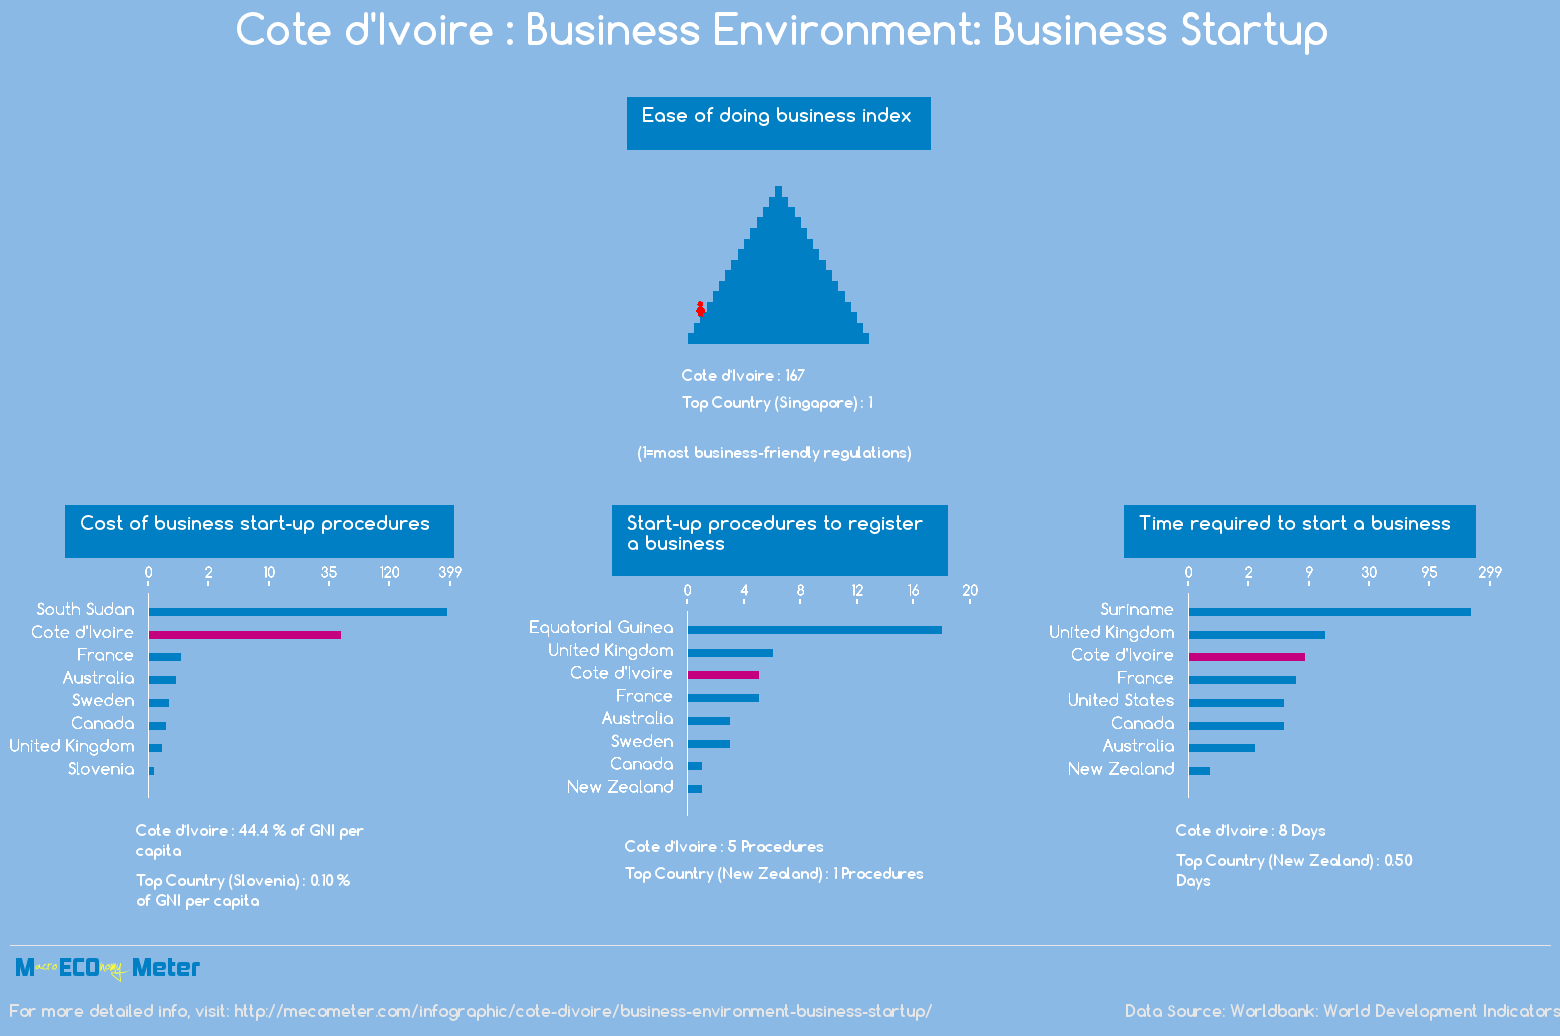 Cote d'Ivoire : Business Environment: Business Startup